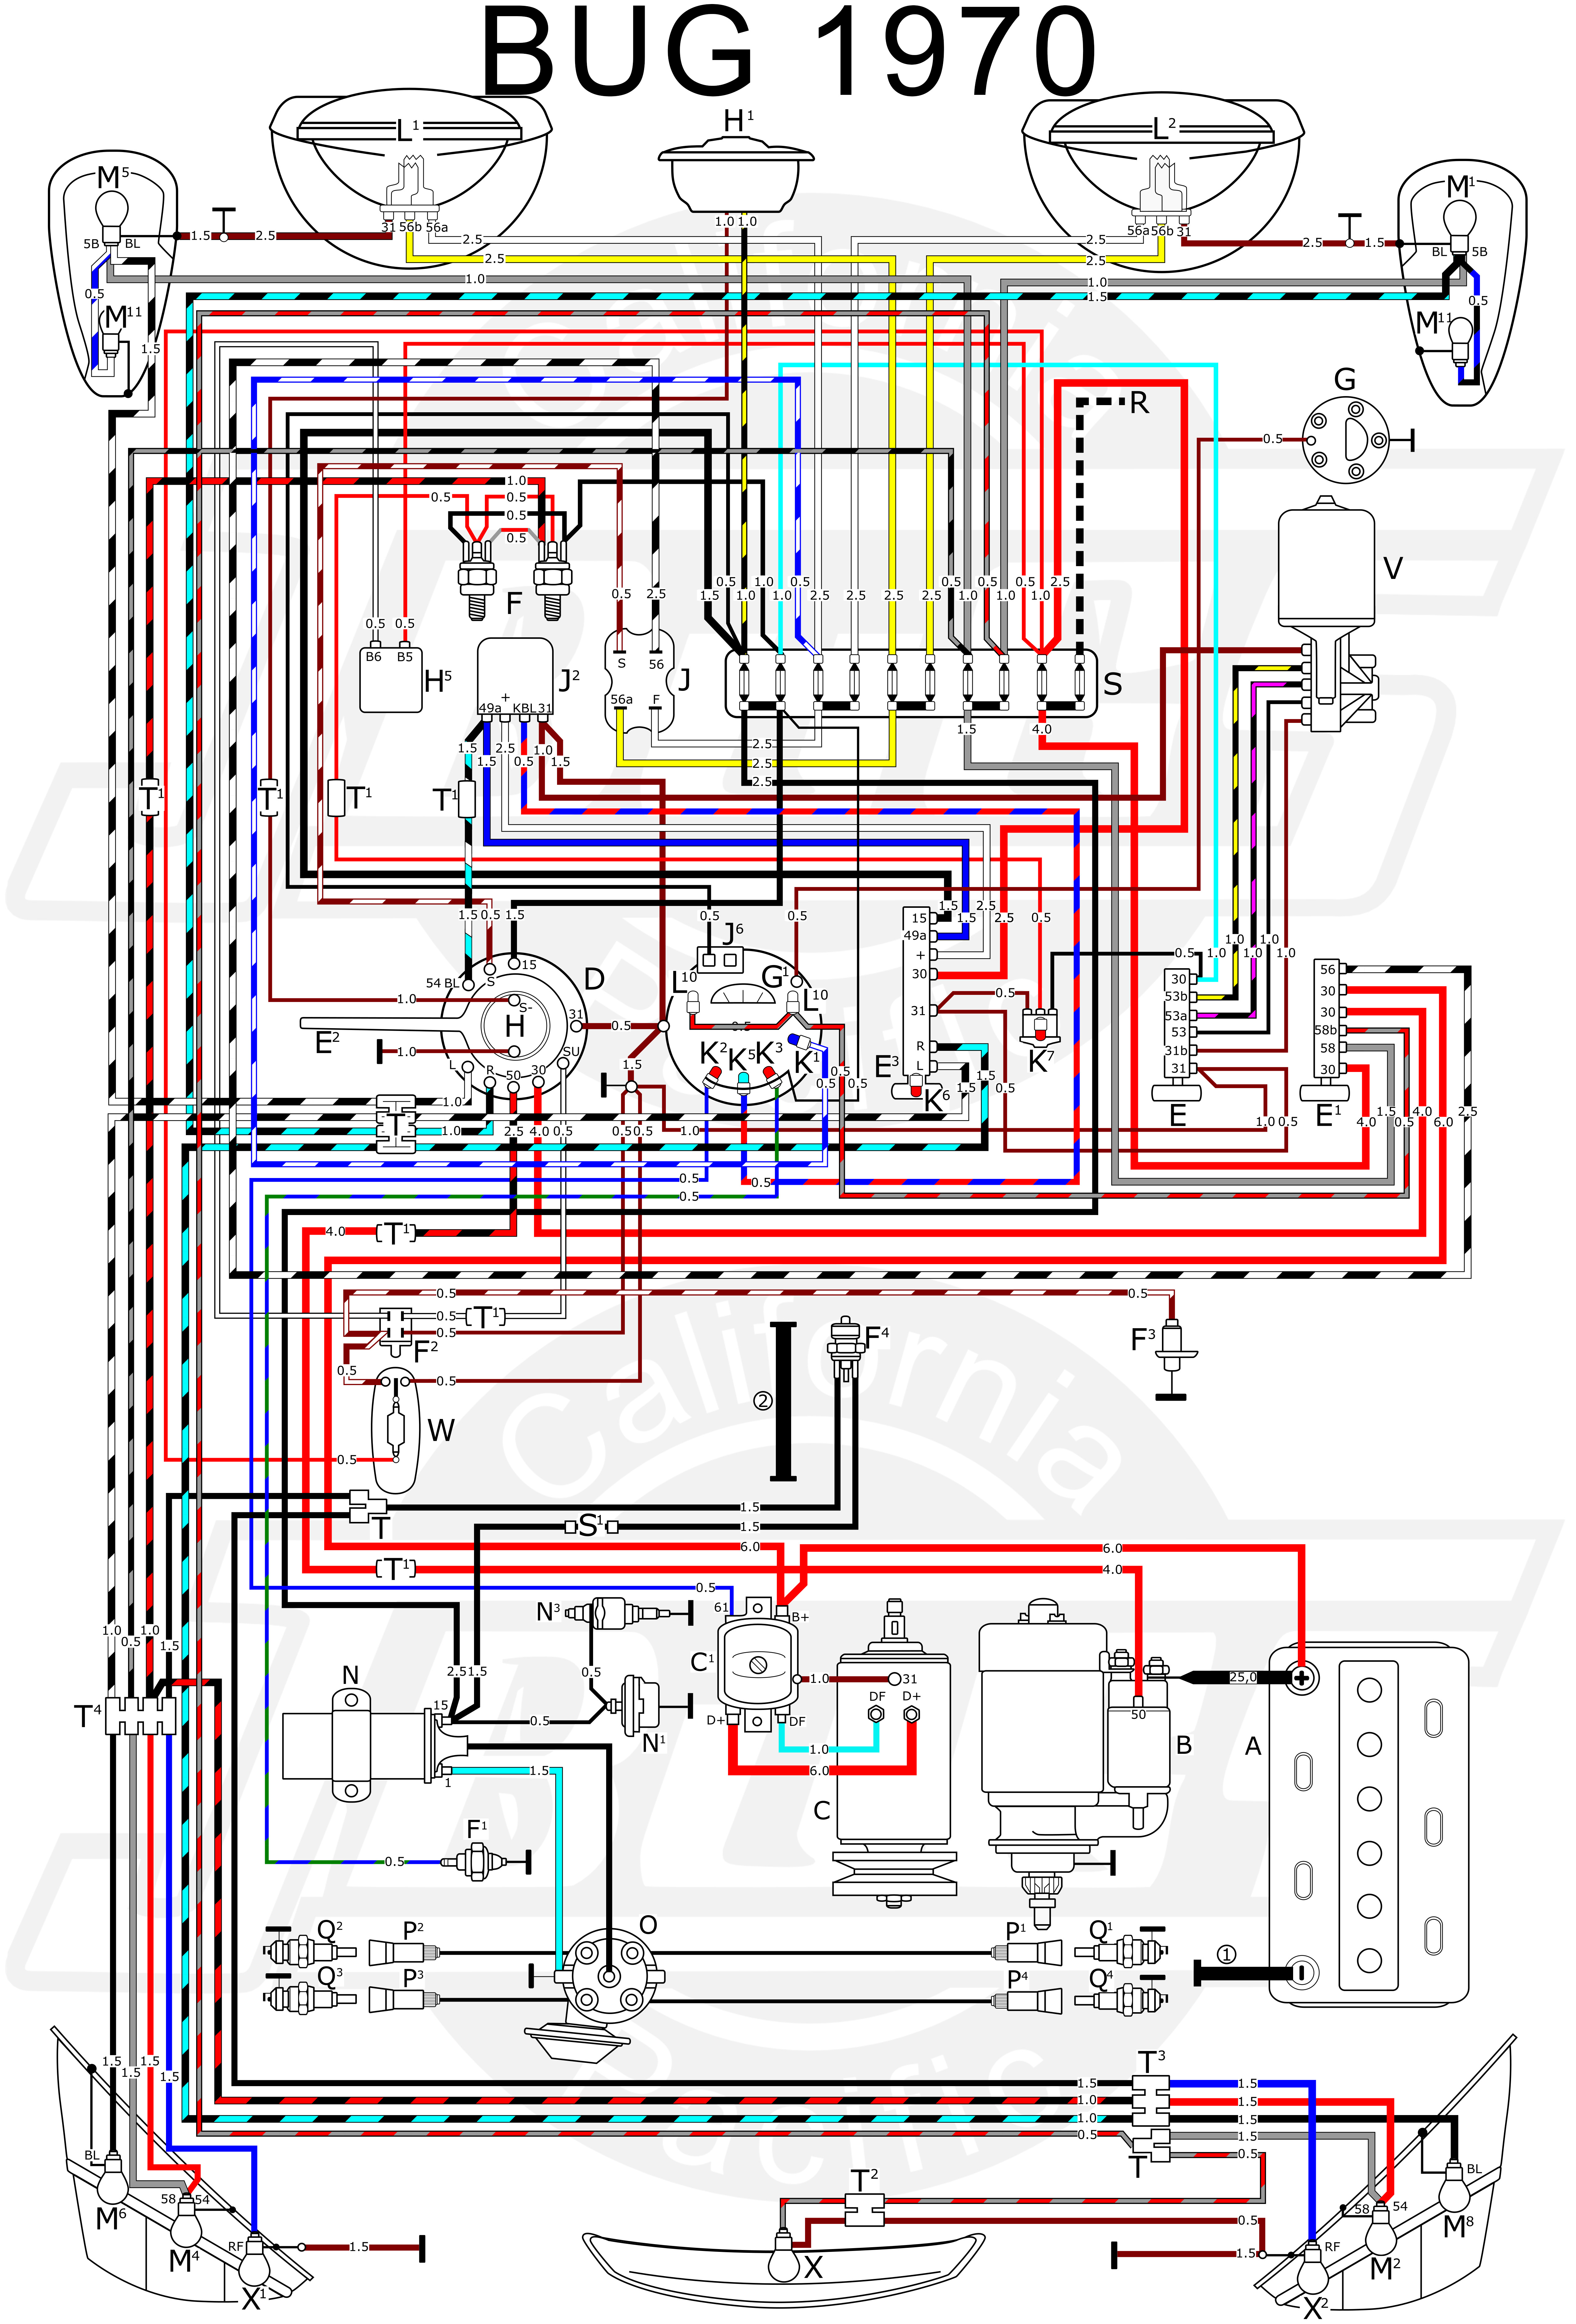 VW Bug 1970 Wiring Diagram vw tech article 1970 wiring diagram 1968 vw type 3 wiring diagram at gsmx.co